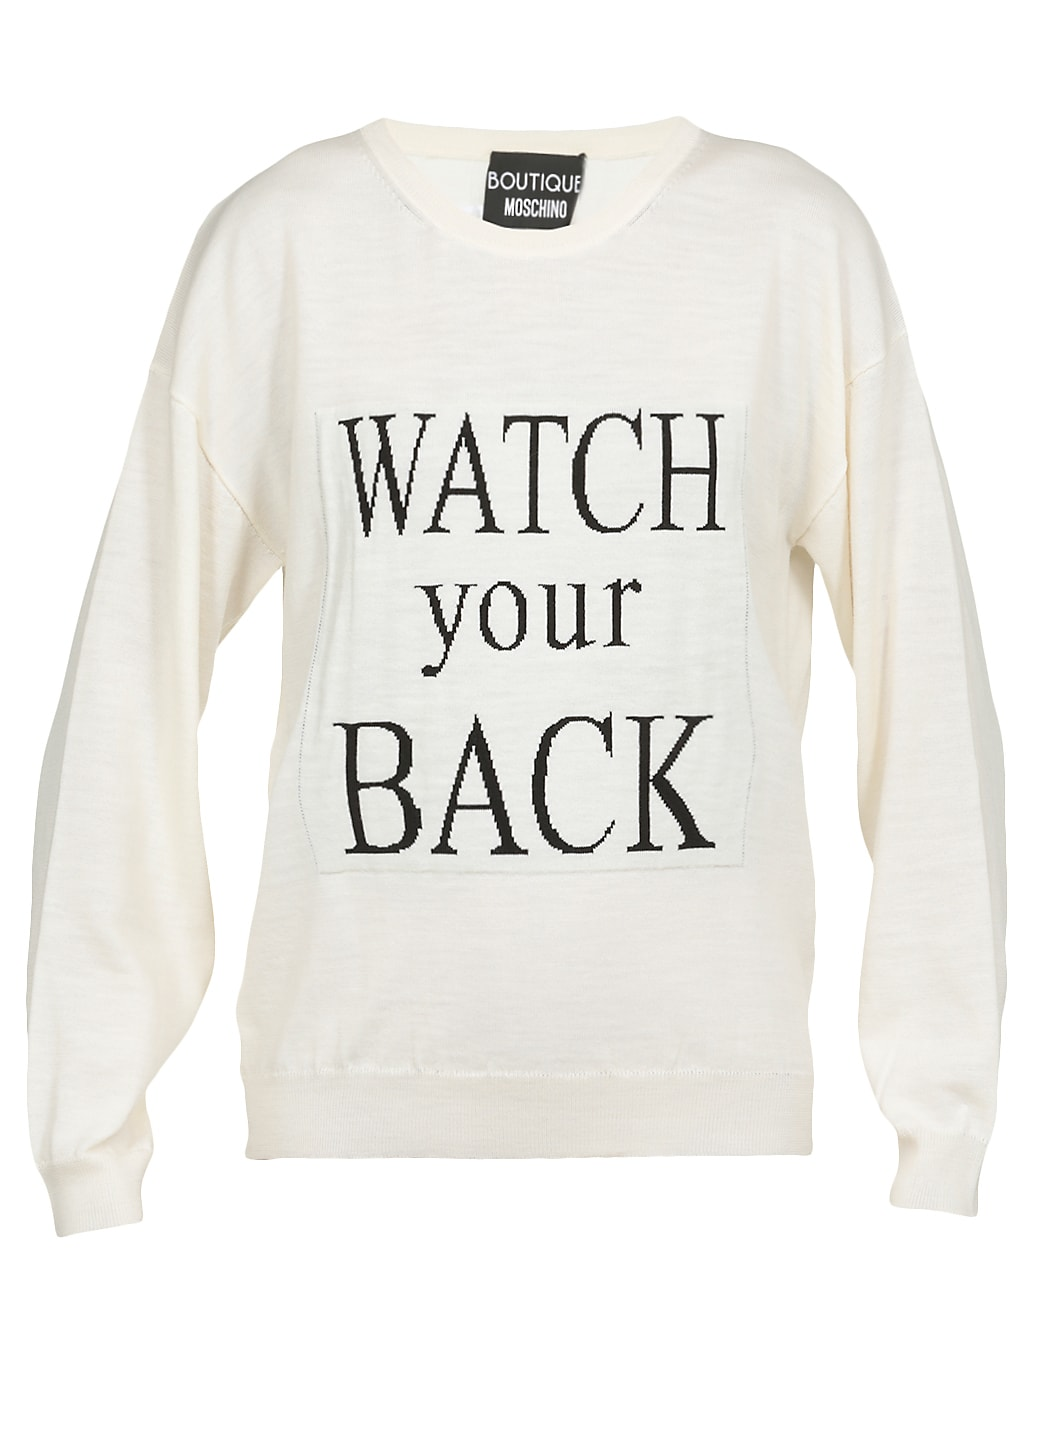 Boutique Moschino Sweater With Embroidery